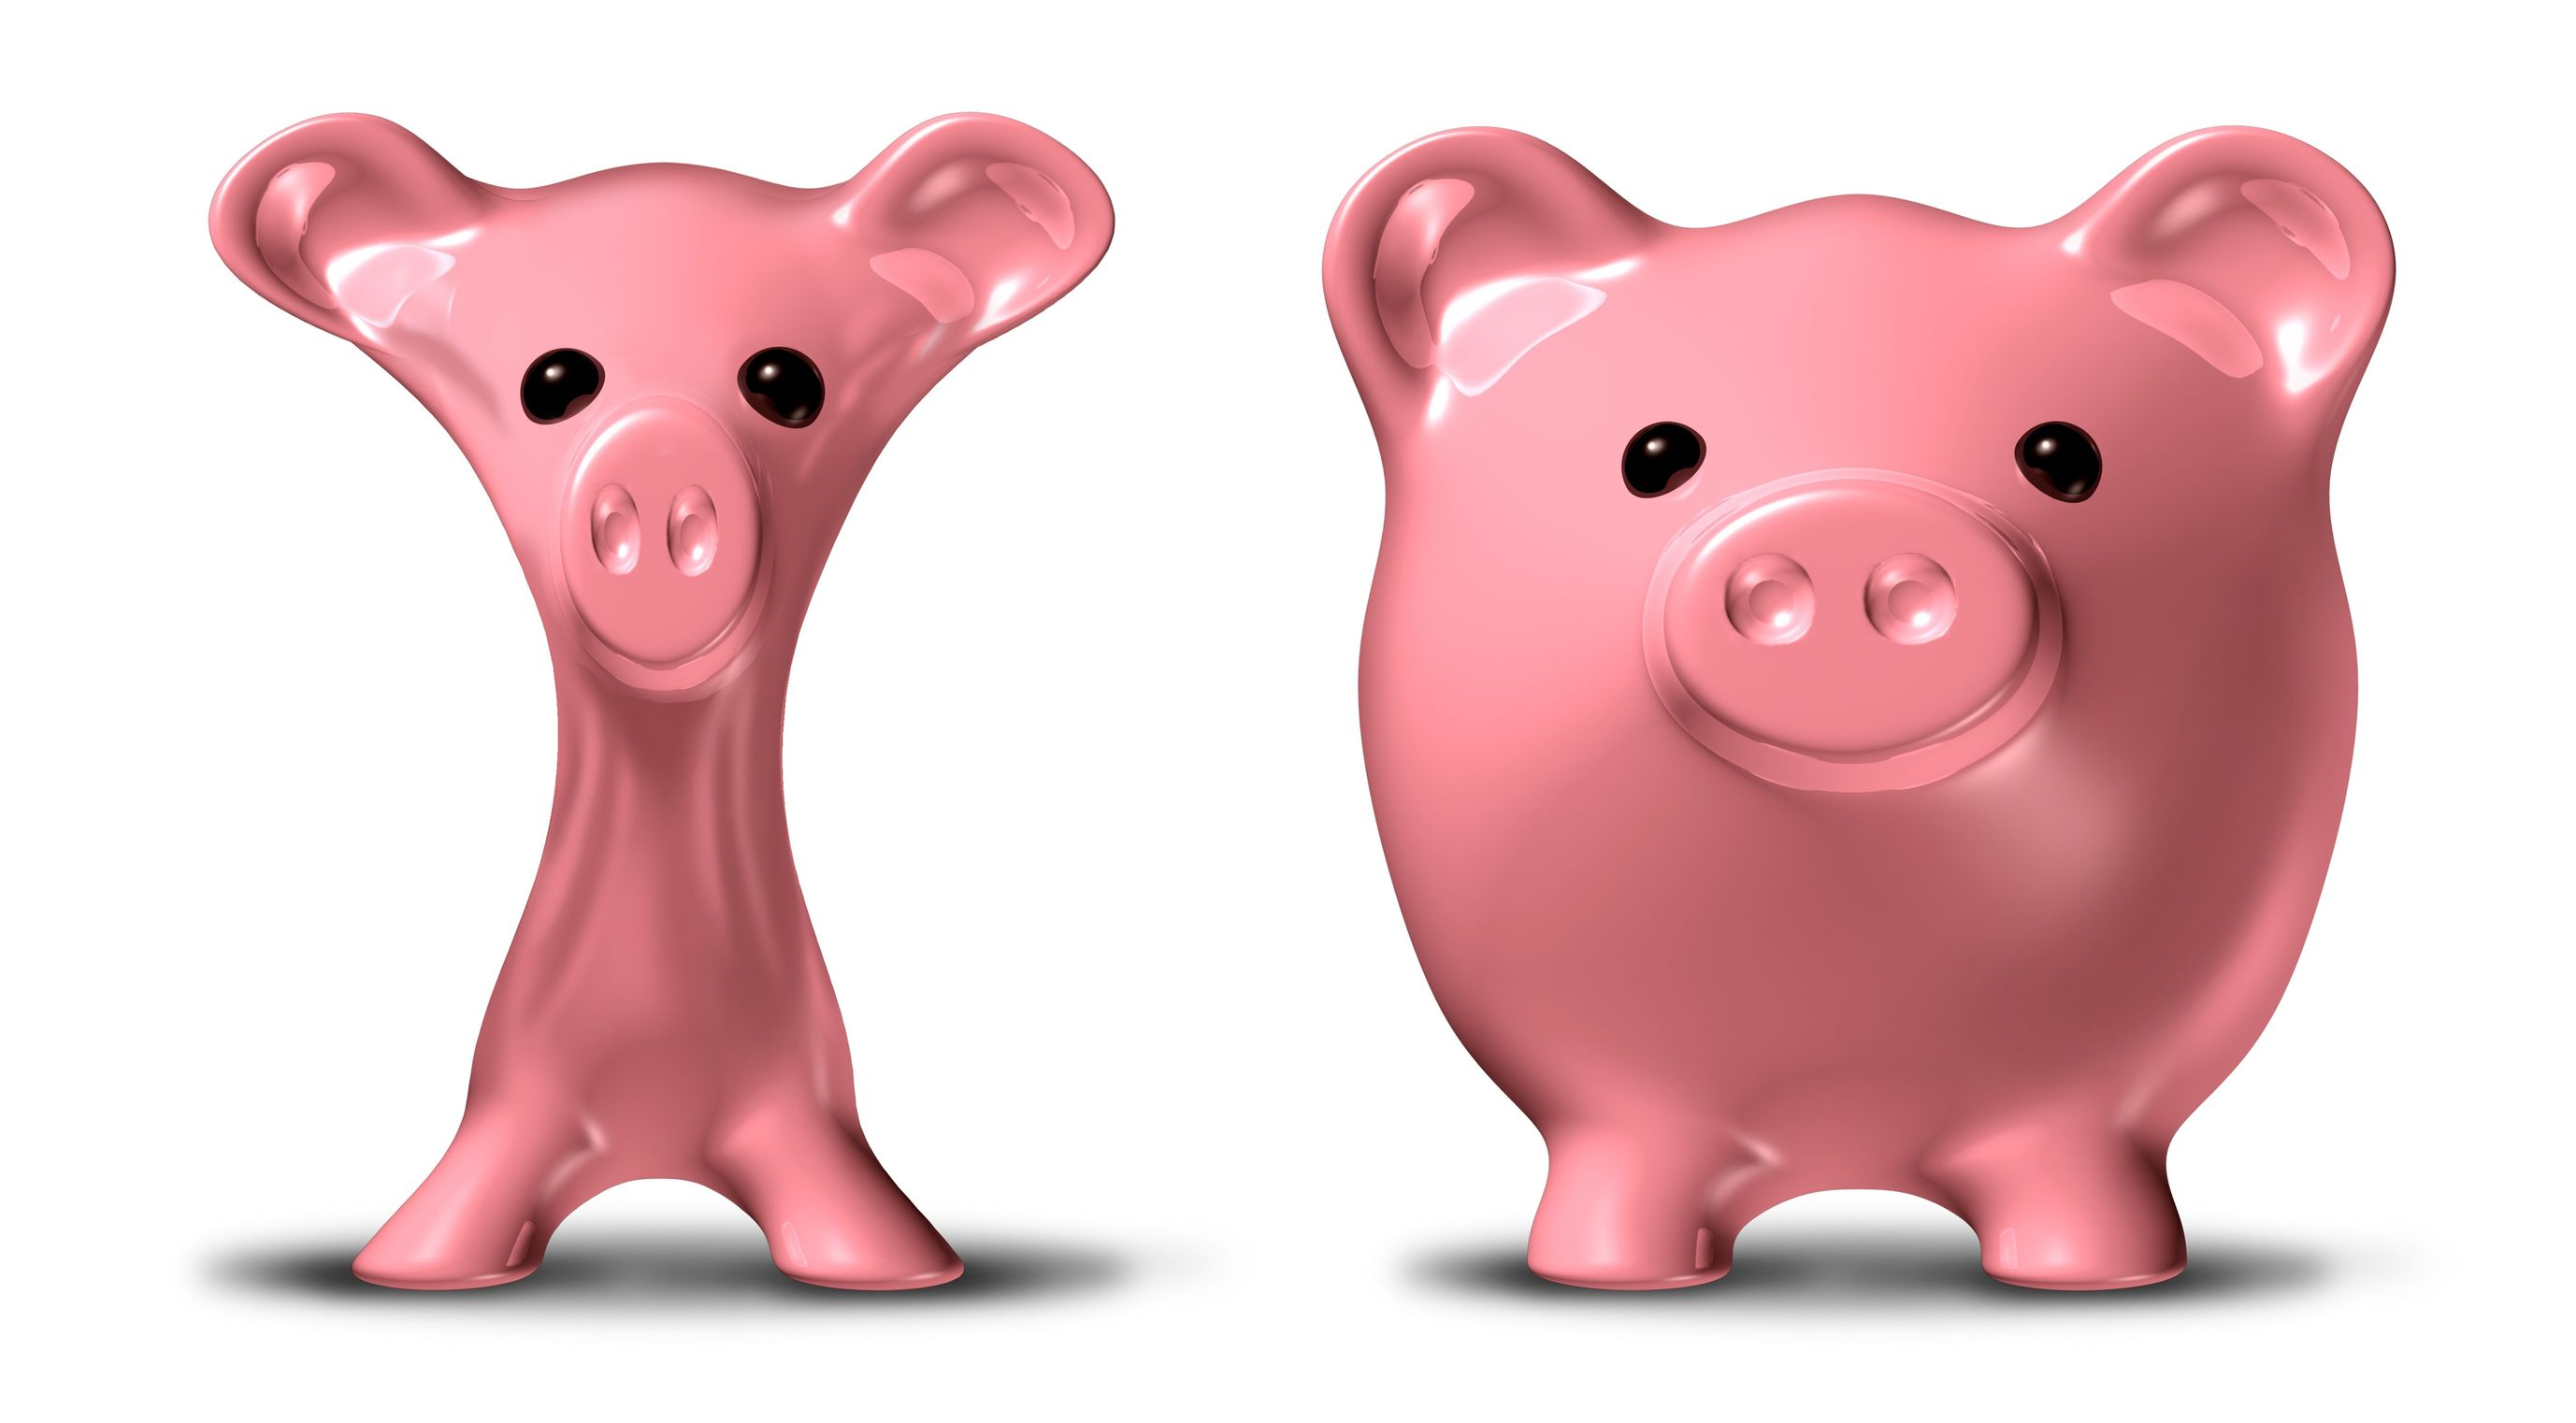 10892076 - cost cutting and budgeting before and after symbol represented by a skinny pink pig savings piggybank that has lost much weight.